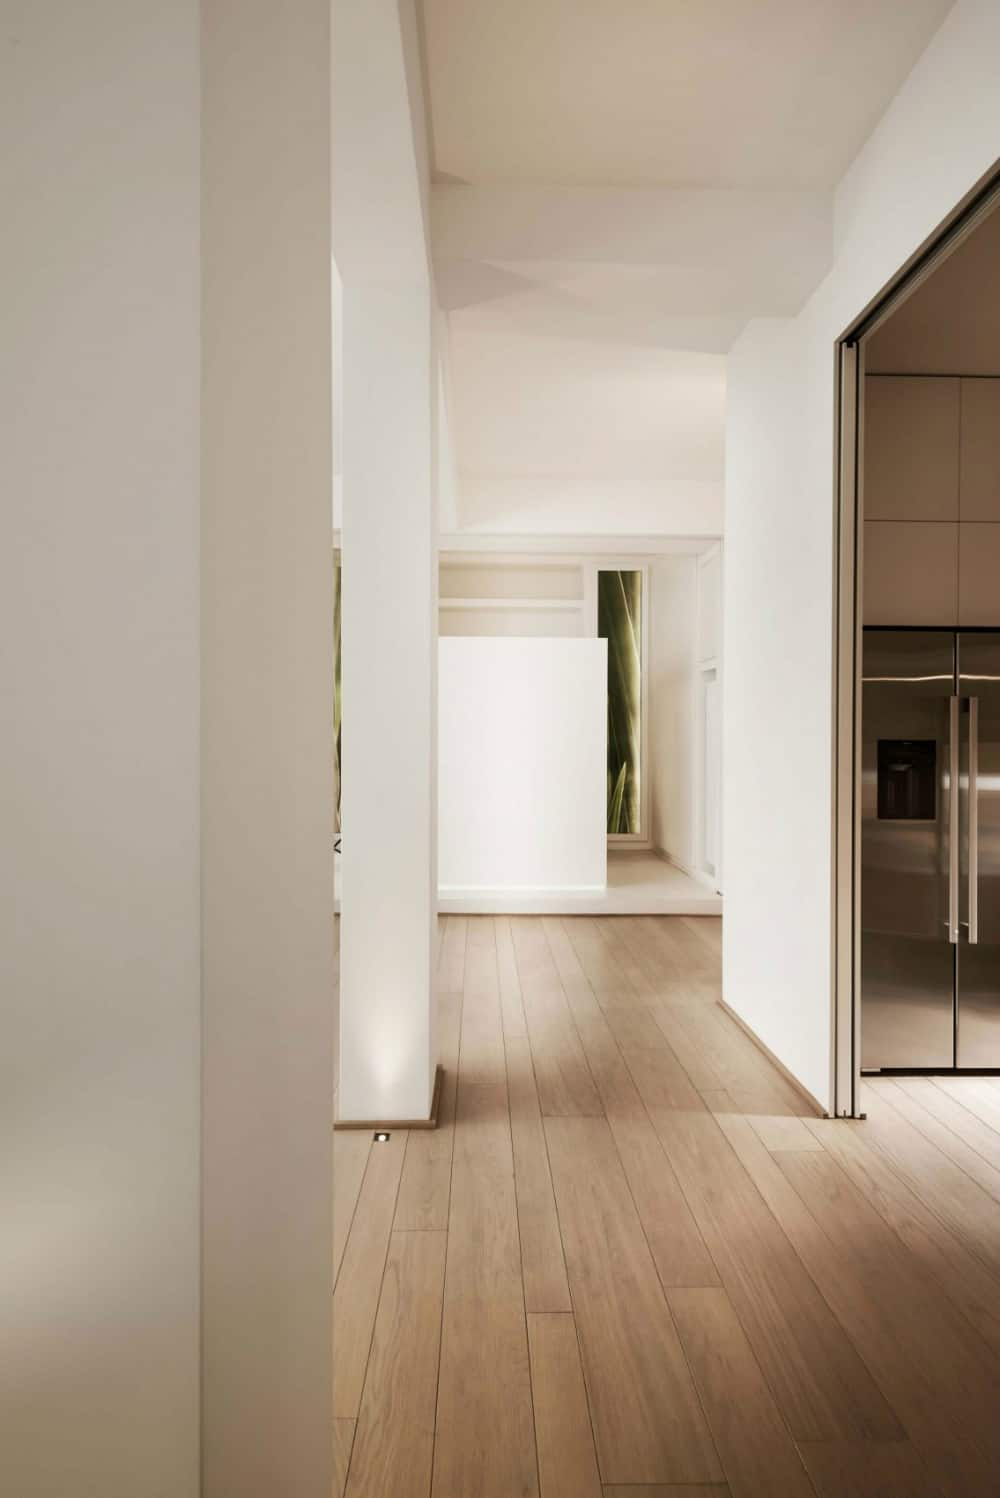 Light wooden floor planks come in different widths